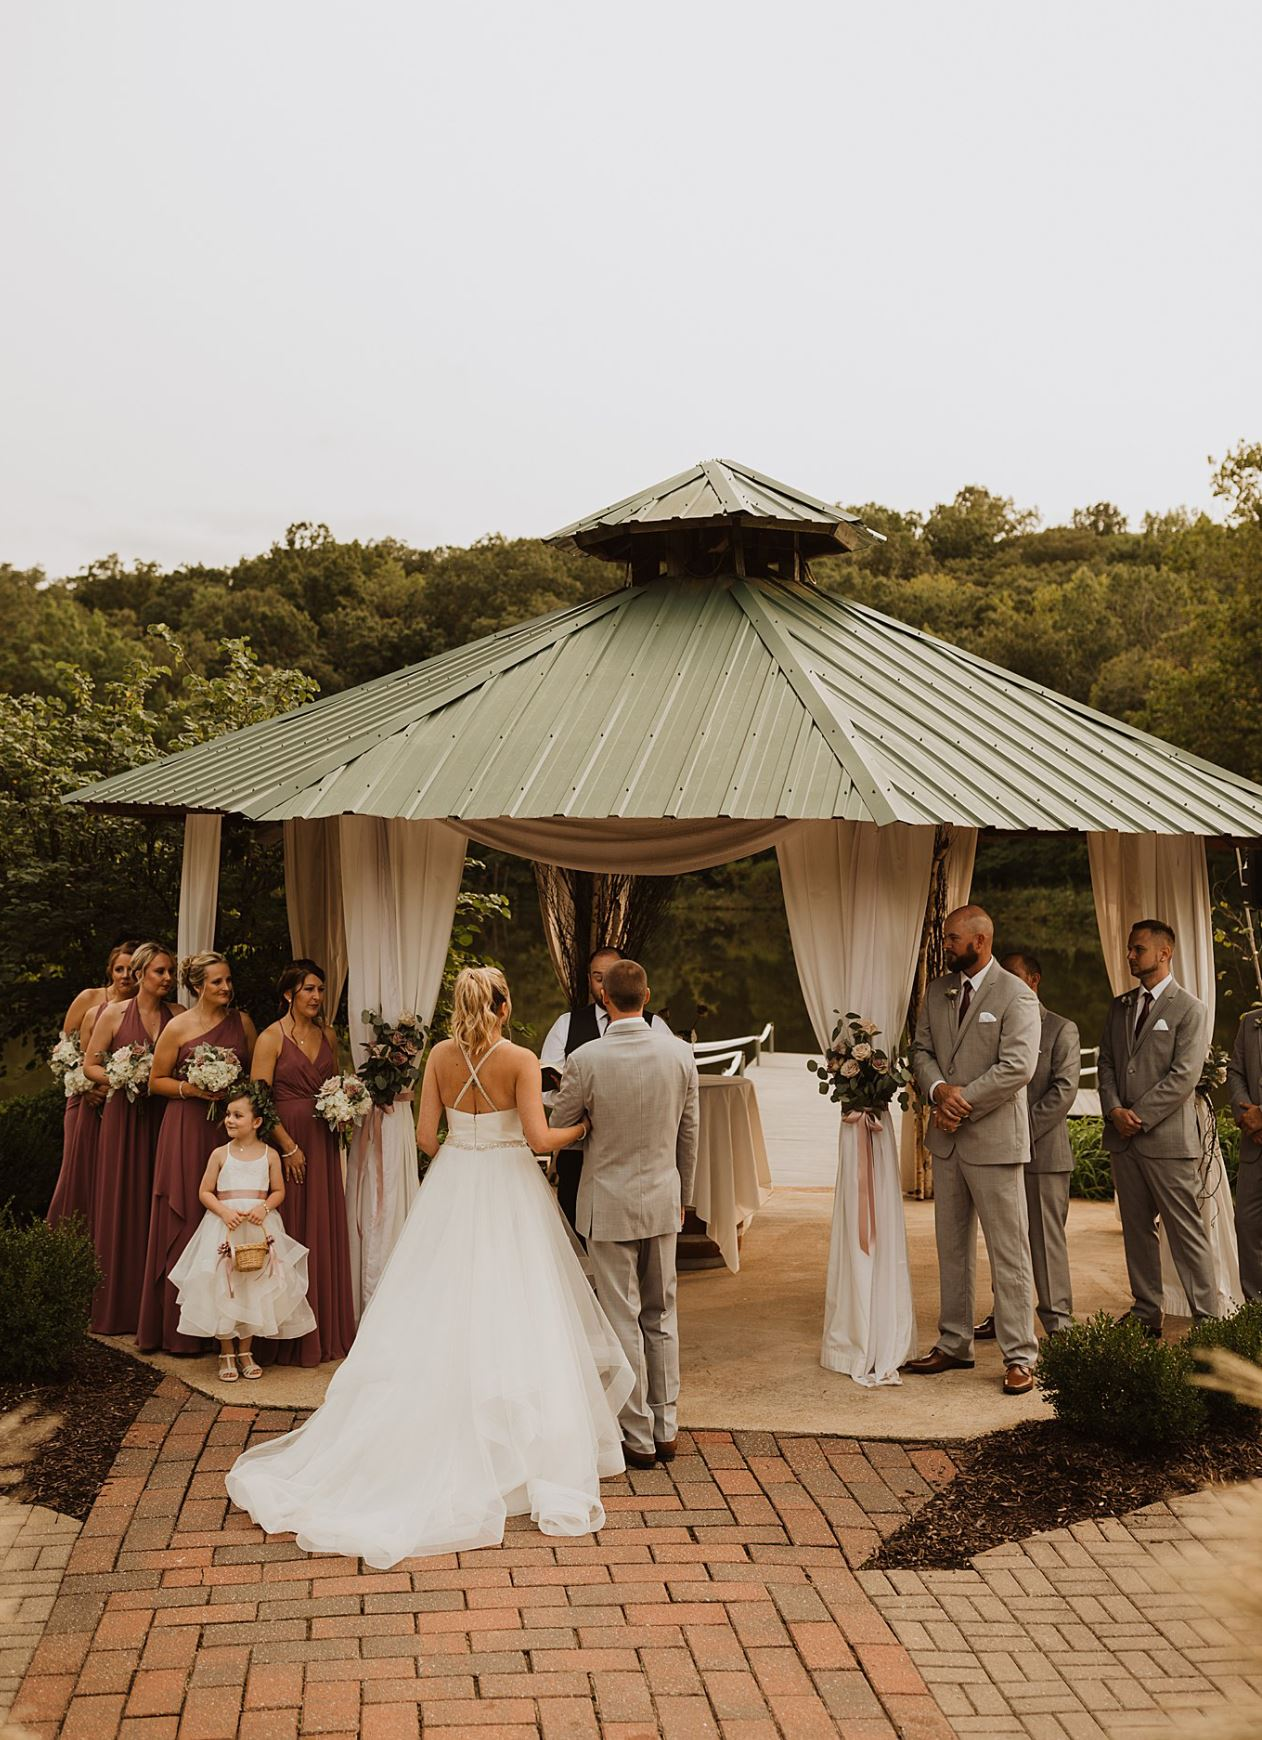 A wedding couple is getting married at the lake at the Little Piney Lodge in Missouri.